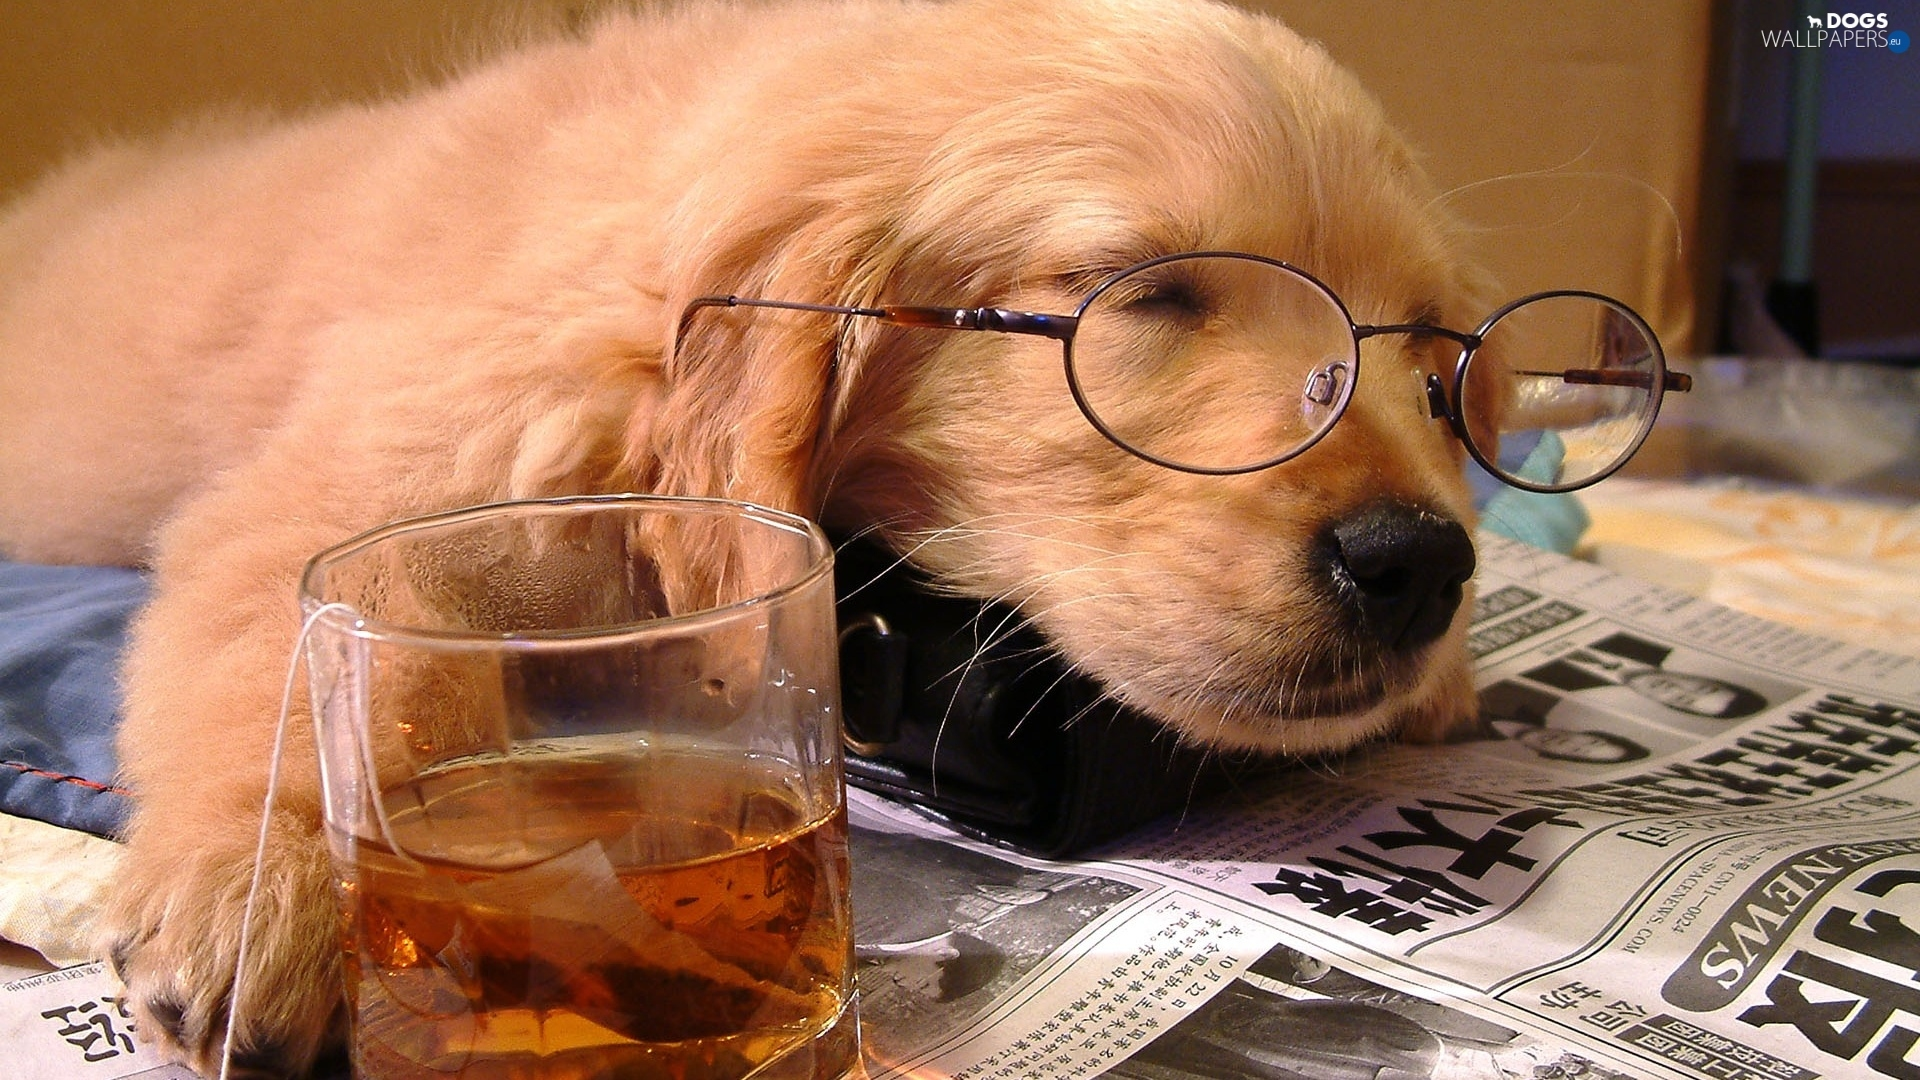 Glasses, Paper, dog